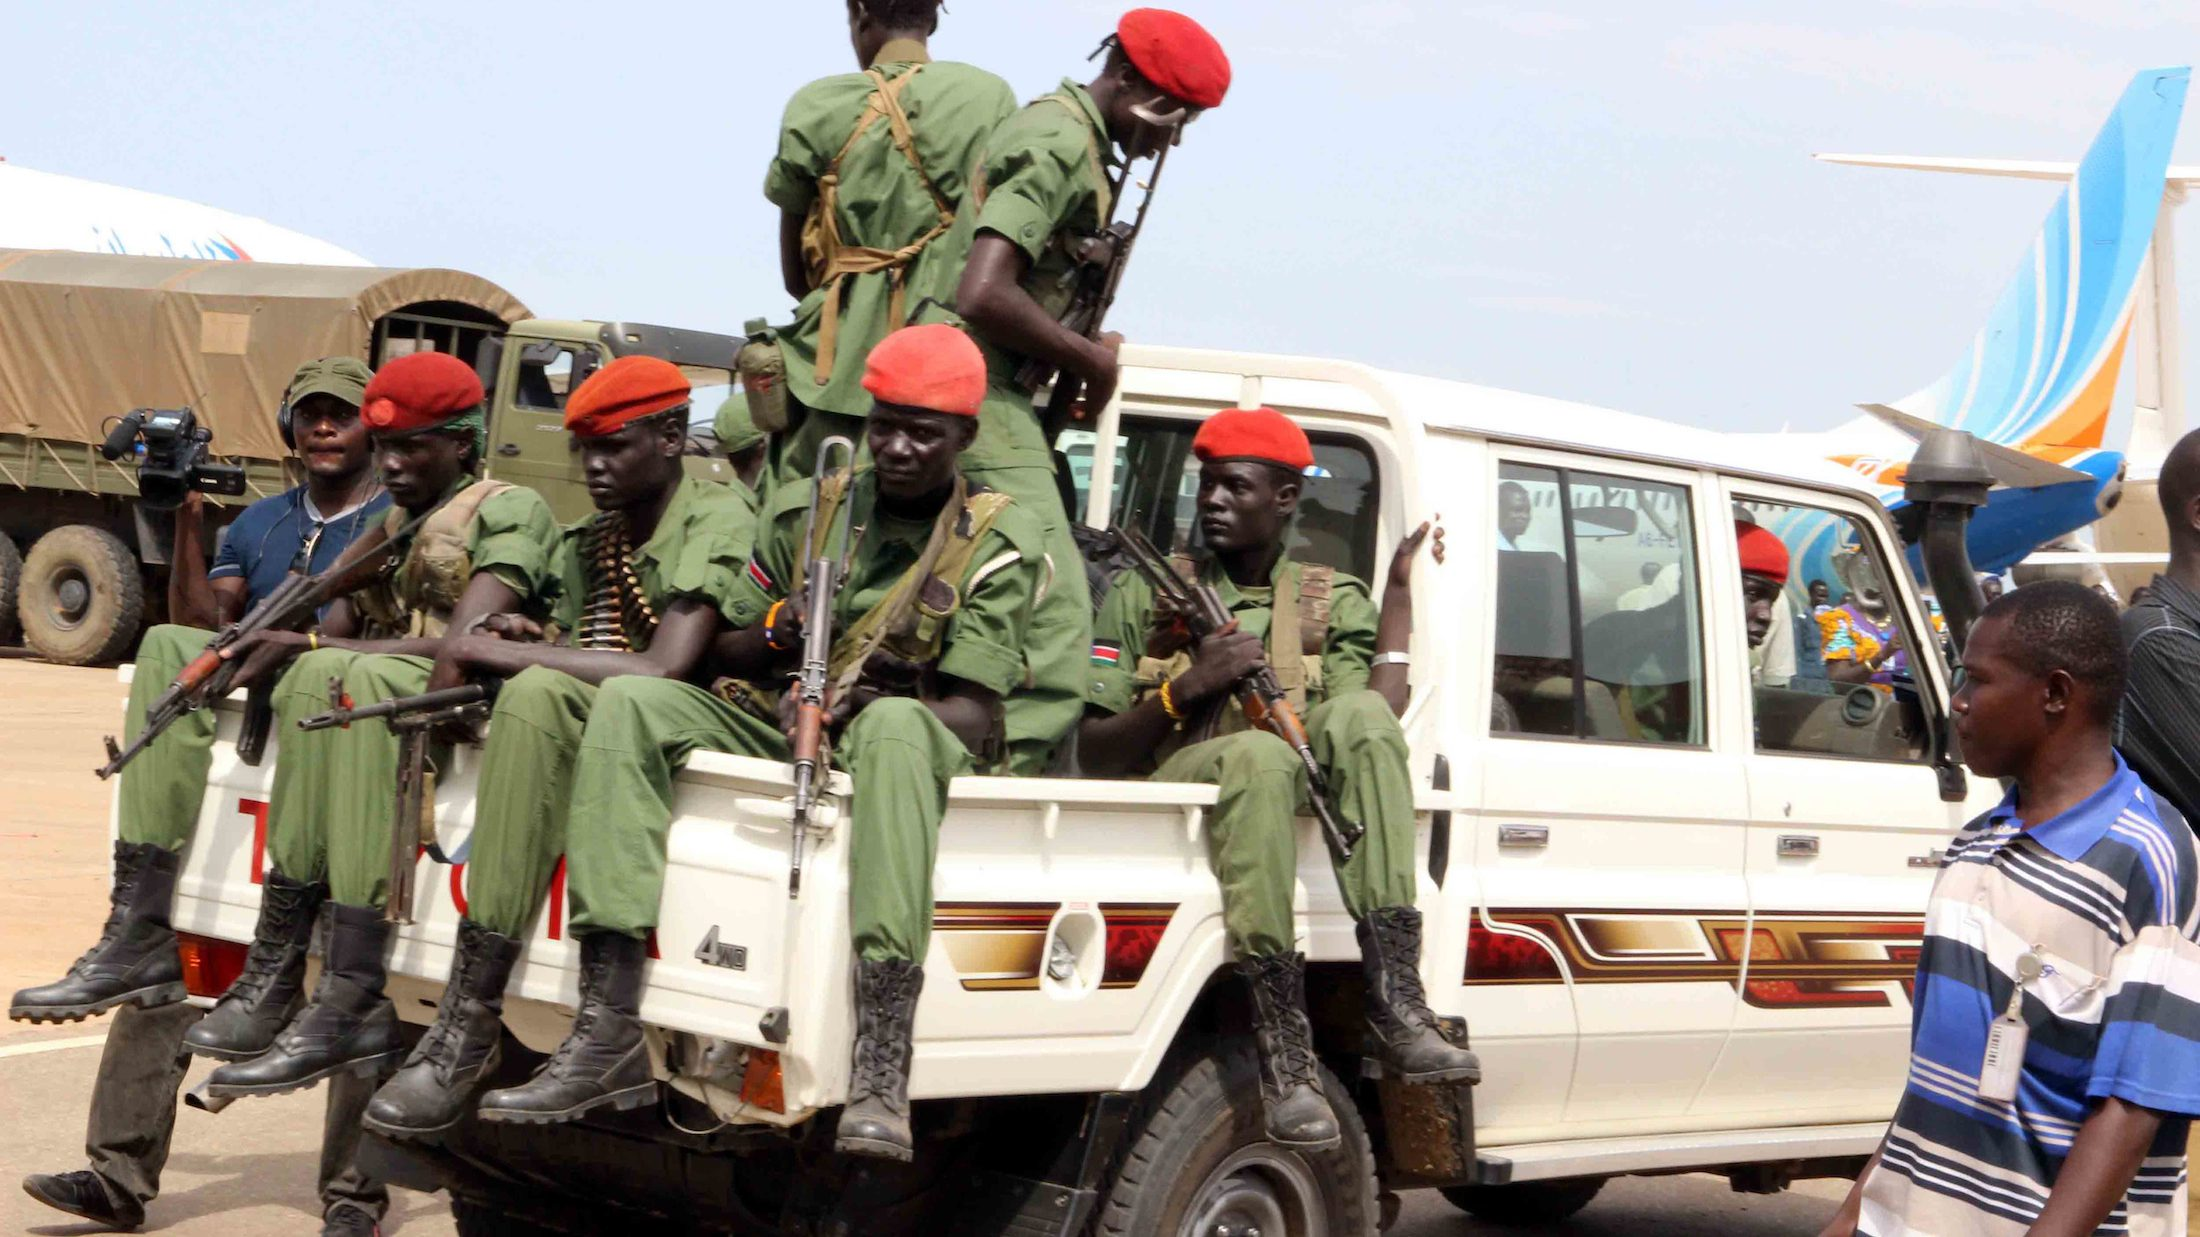 A file photo dated 25 April 2016 showing a group of the 195 opposition soldiers arriving with General Simon Gatwech Dual, the chief of staff of the South Sudan rebel troops, in Juba, South Sudan. Reports on 10 July 2016 said hundreds were killed in two days of renewed fighting between supporters of President Salva Kiir and Vice-President Riek Machar. The UN Security Council condemned the fighting that erupted in Juba, the worst violence since a peace deal was signed in 2015 and forming the national unity government in April this year.